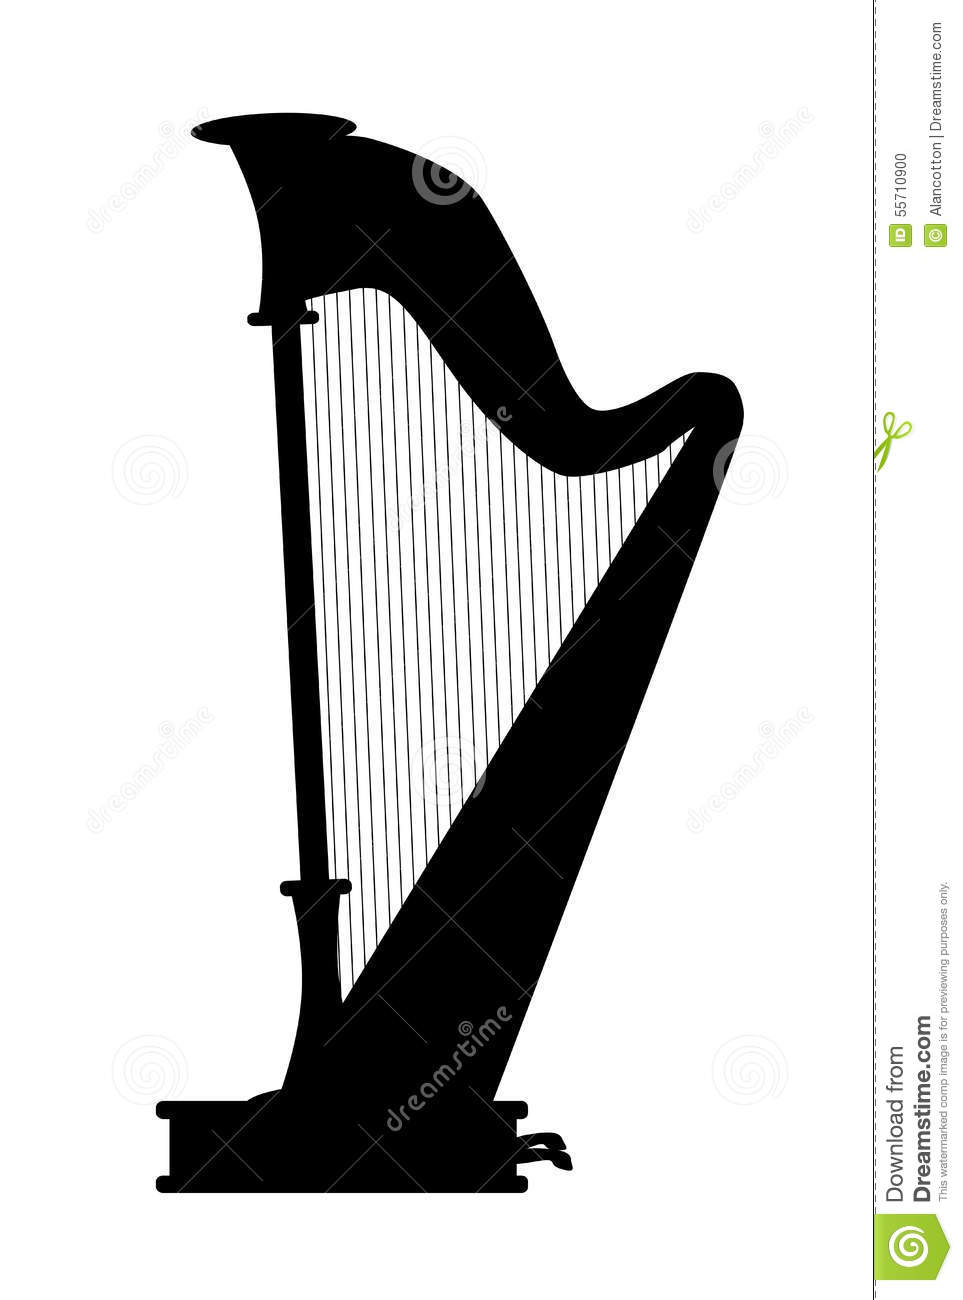 Harp Stock Illustration.